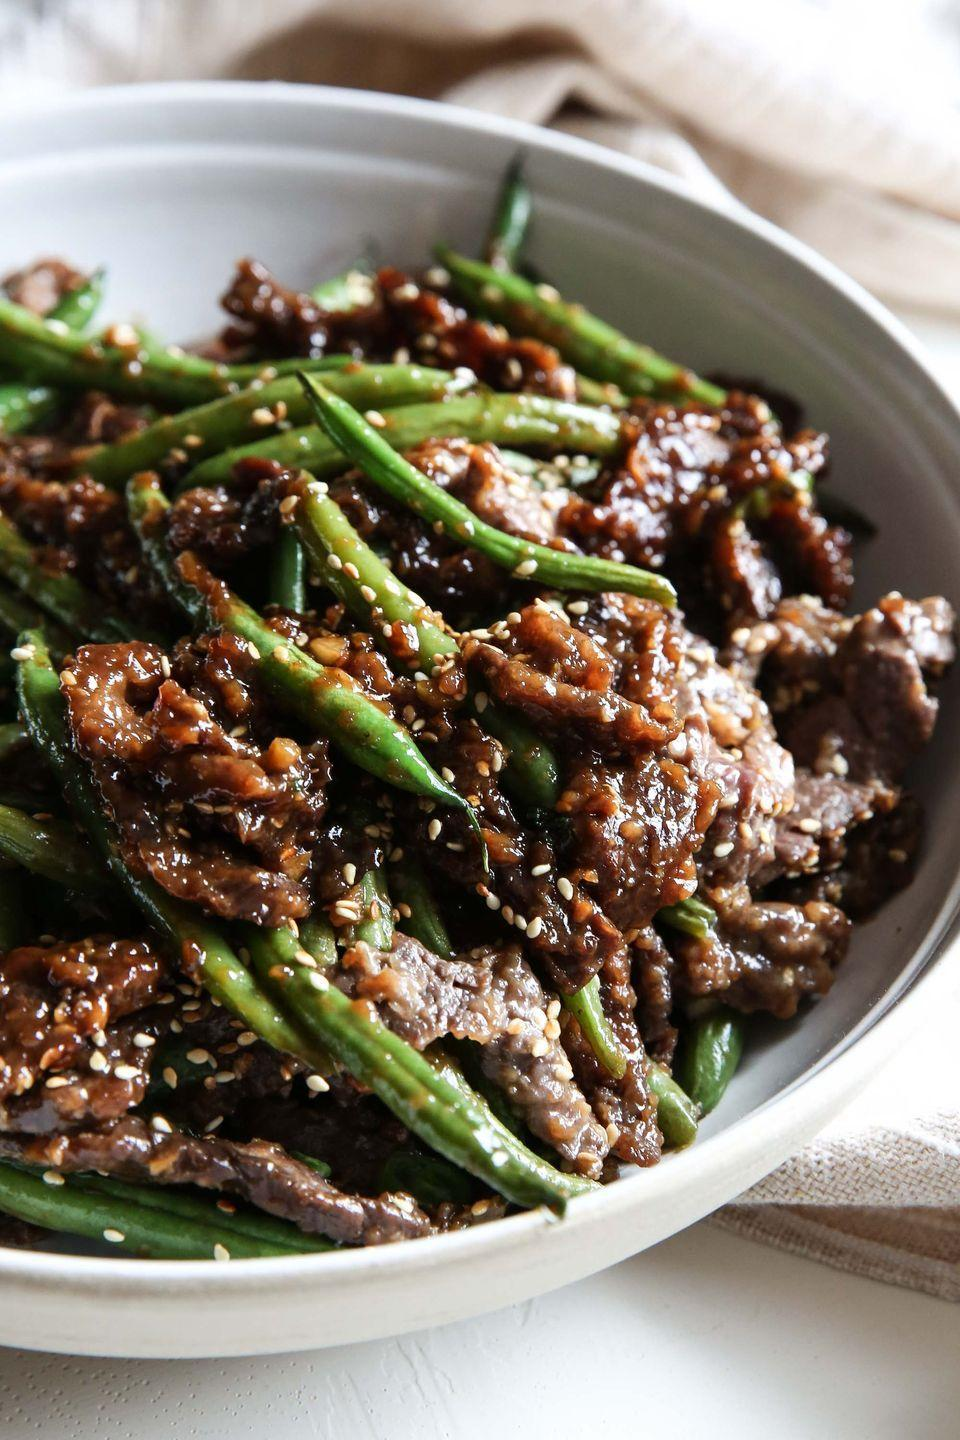 "<p>This is the most flavorful a stir-fry could ever be.</p><p>Get the recipe from <a href=""https://www.delish.com/cooking/recipe-ideas/recipes/a51791/sesame-ginger-beef-recipe/"" rel=""nofollow noopener"" target=""_blank"" data-ylk=""slk:Delish"" class=""link rapid-noclick-resp"">Delish</a>.</p>"